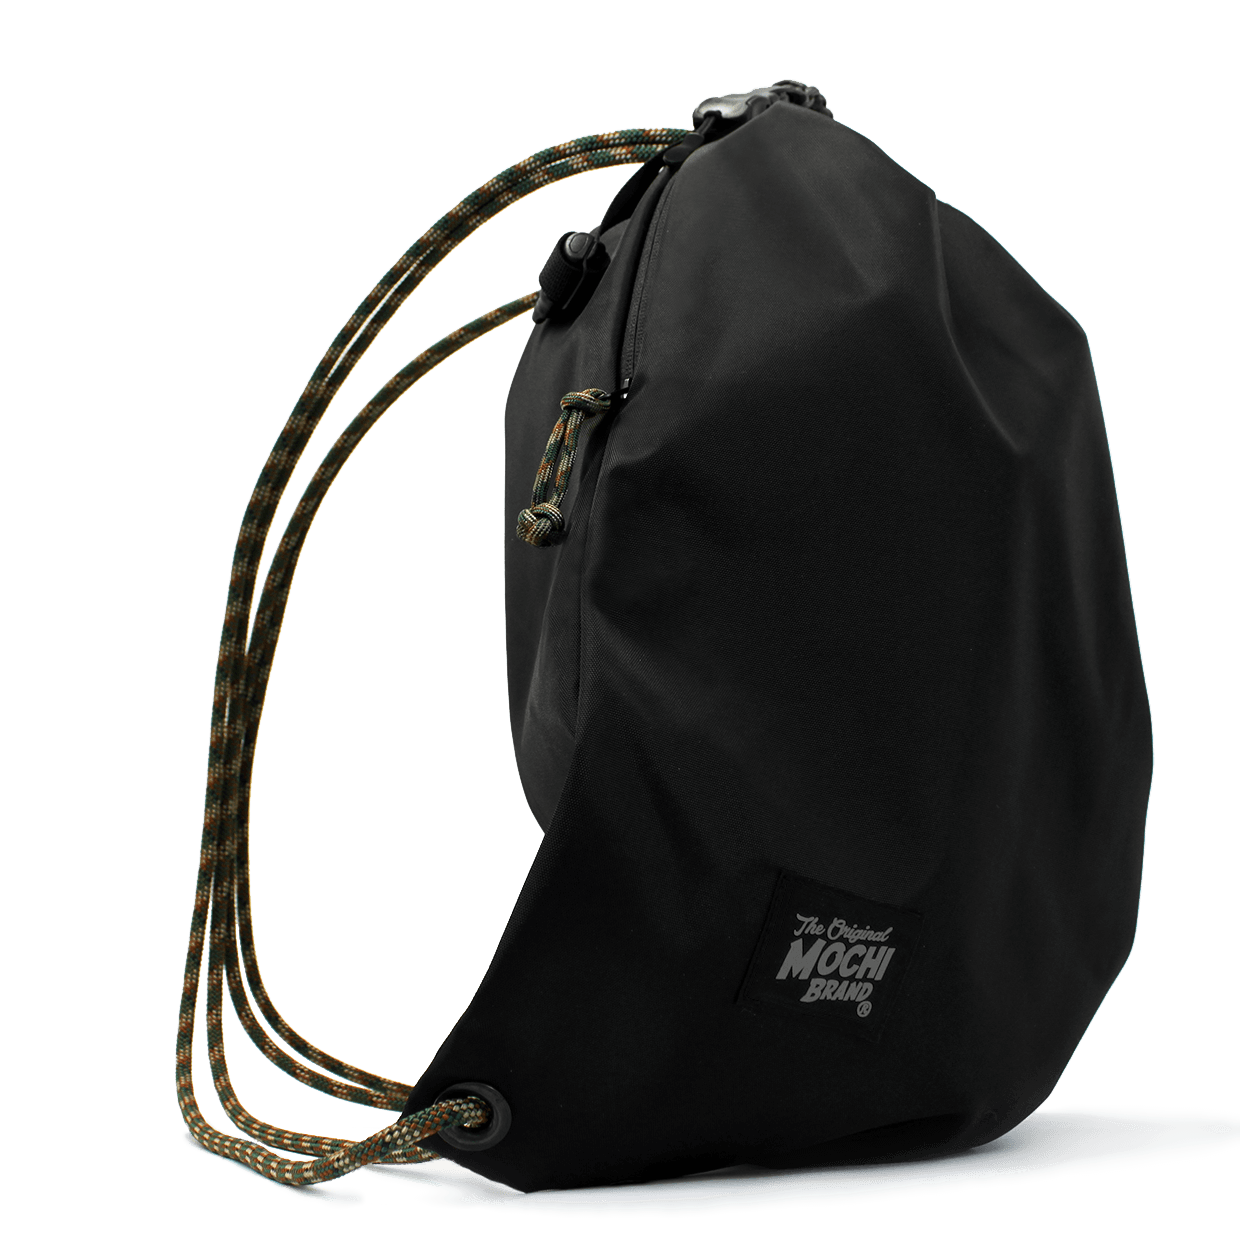 The Bags - Mochibrand Drawstring Backpacks